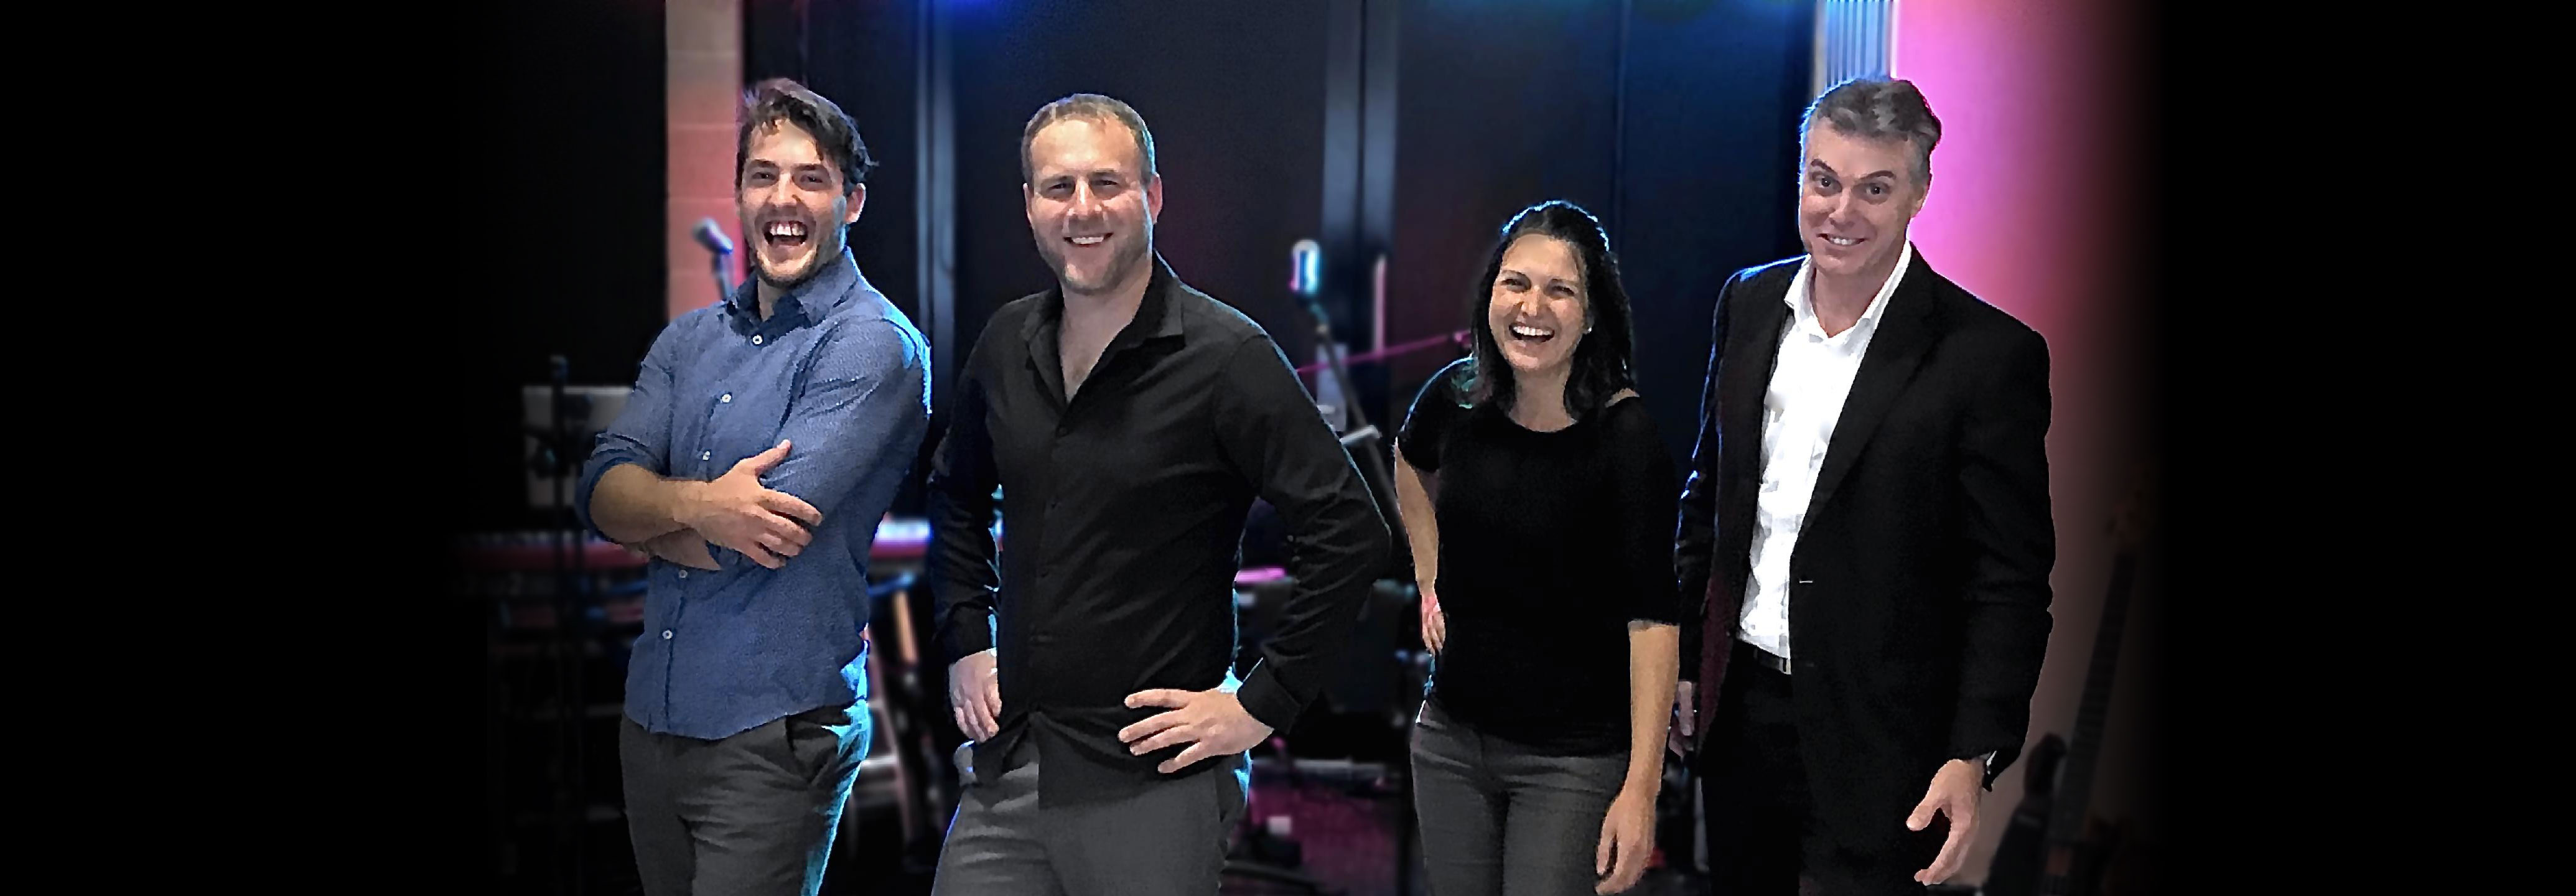 High quality Sydney Rock and Dance cover band for hire - live music & entertainment for your corporate function.